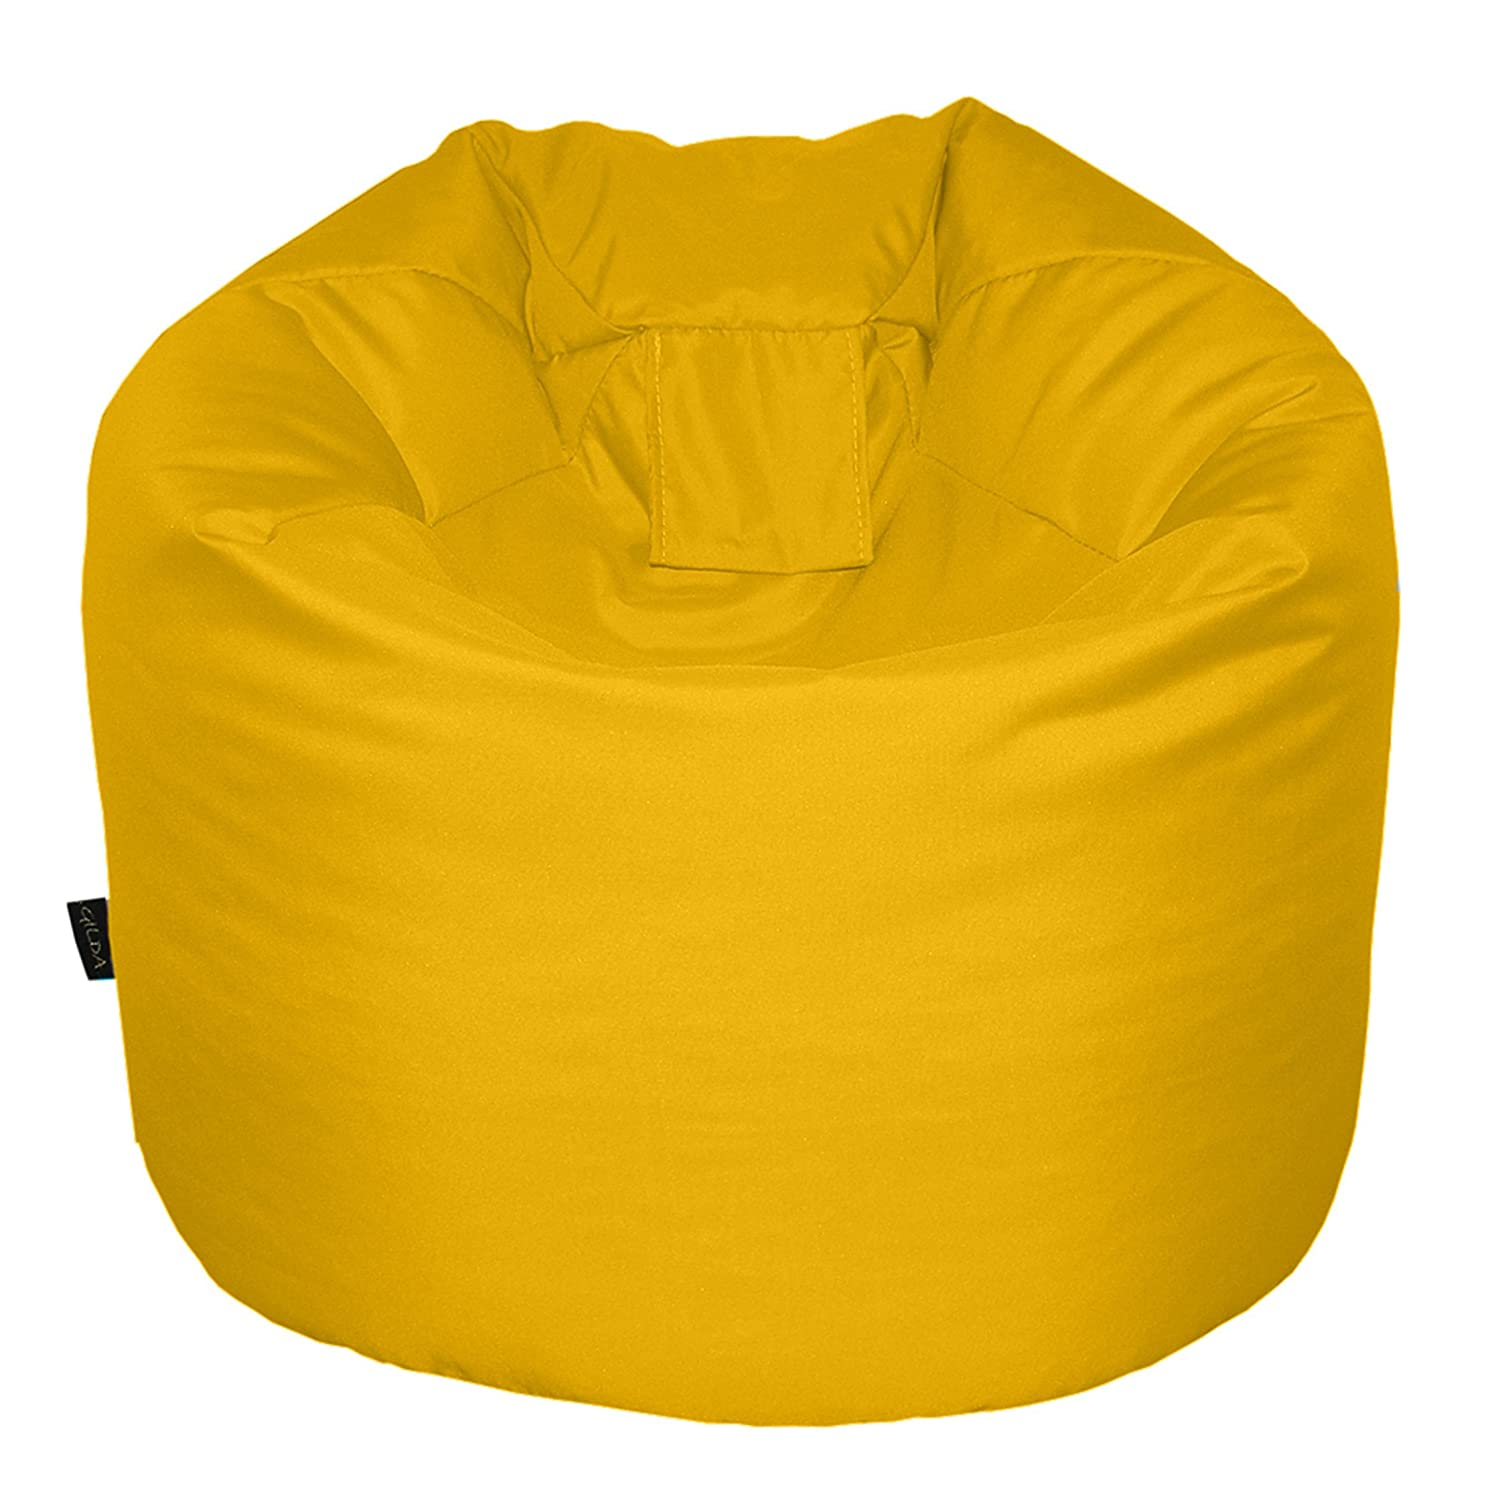 CHILDRENS BEANBAG YELLOW Bean bag Chair Stain & Water Resistant